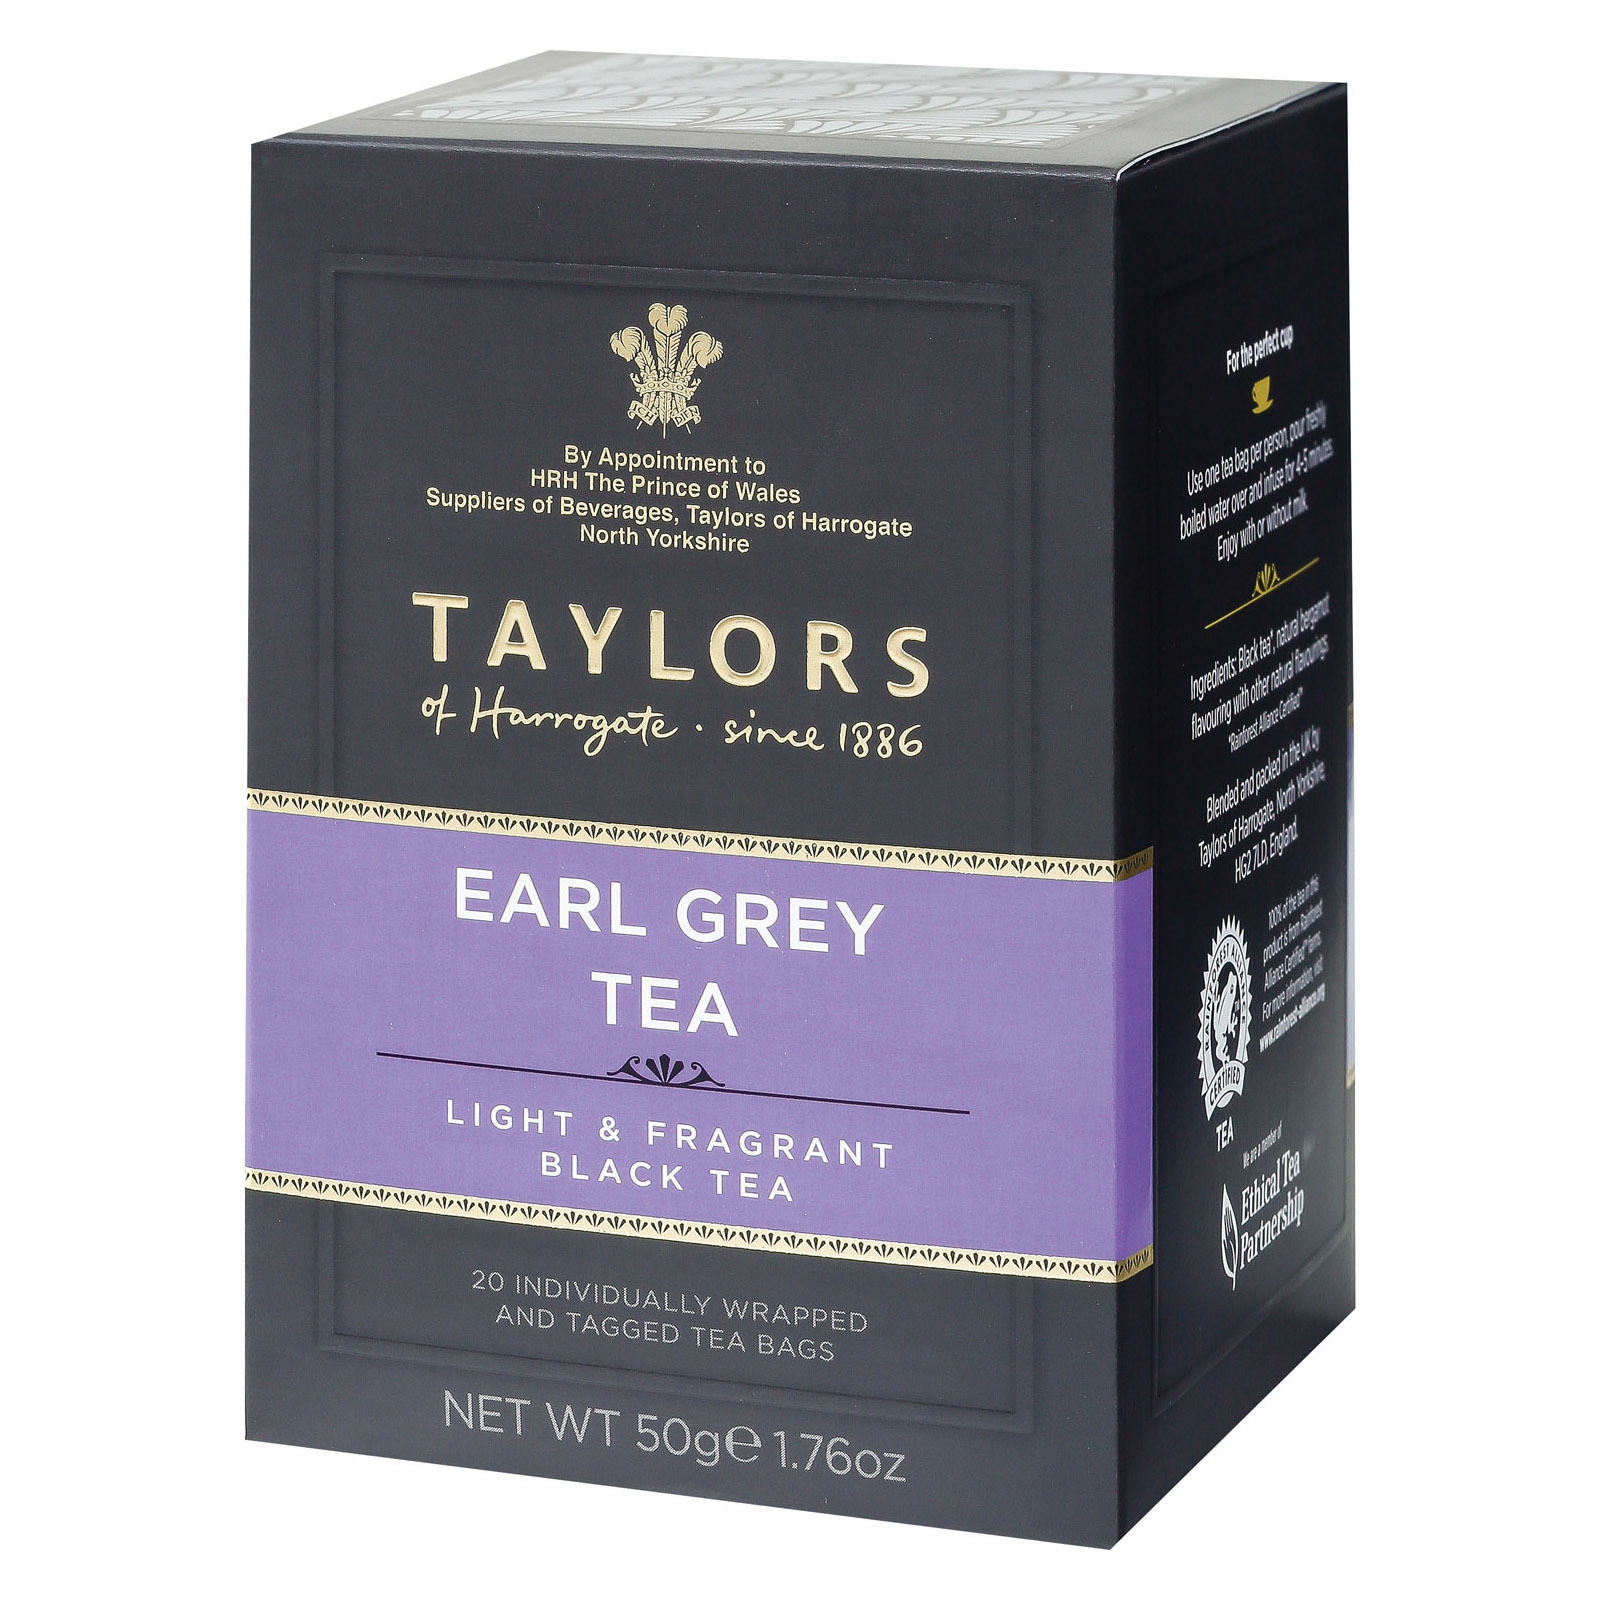 Taylors of Harrogate Black Tea - Earl Grey - Case of 6 - 20 Bags